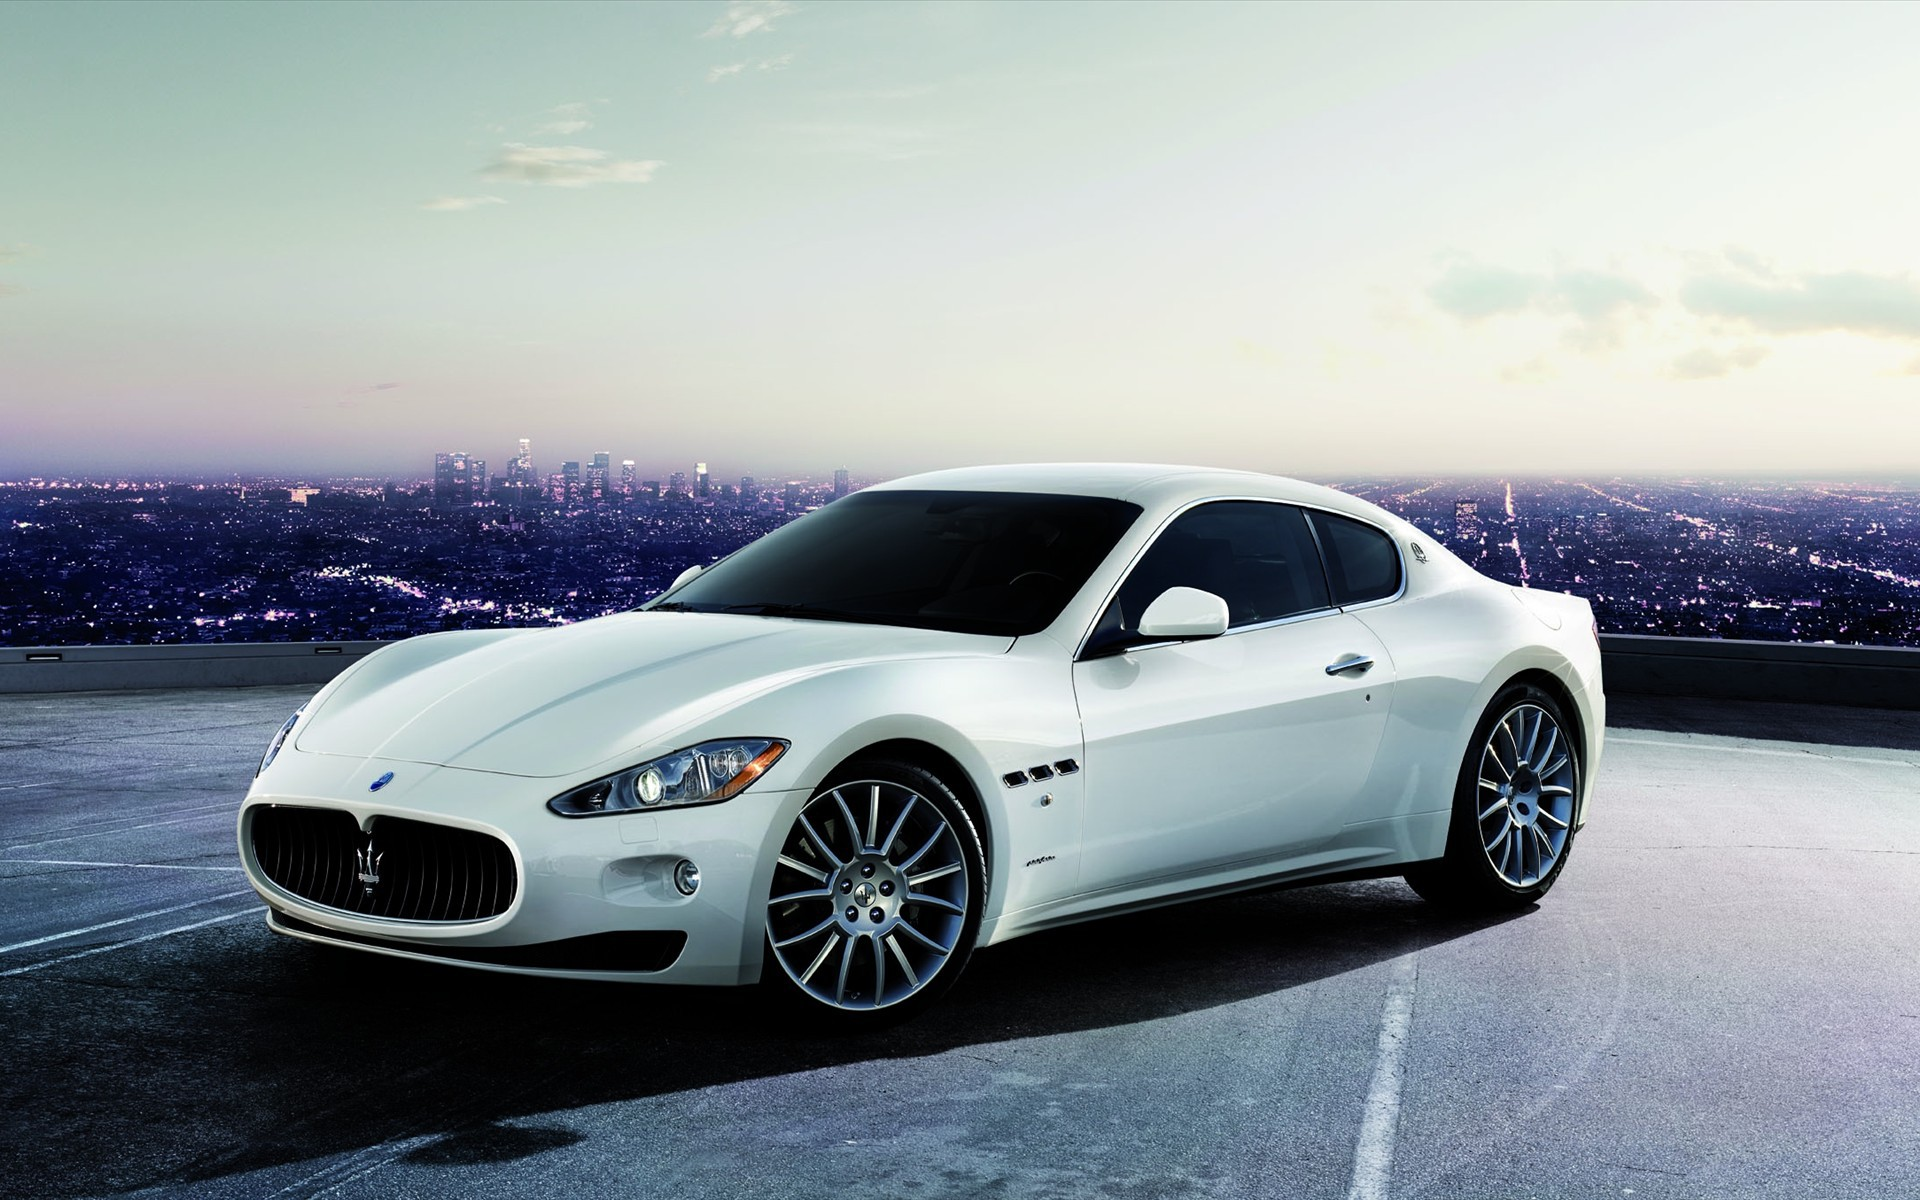 32112 download wallpaper Transport, Auto, Maserati screensavers and pictures for free